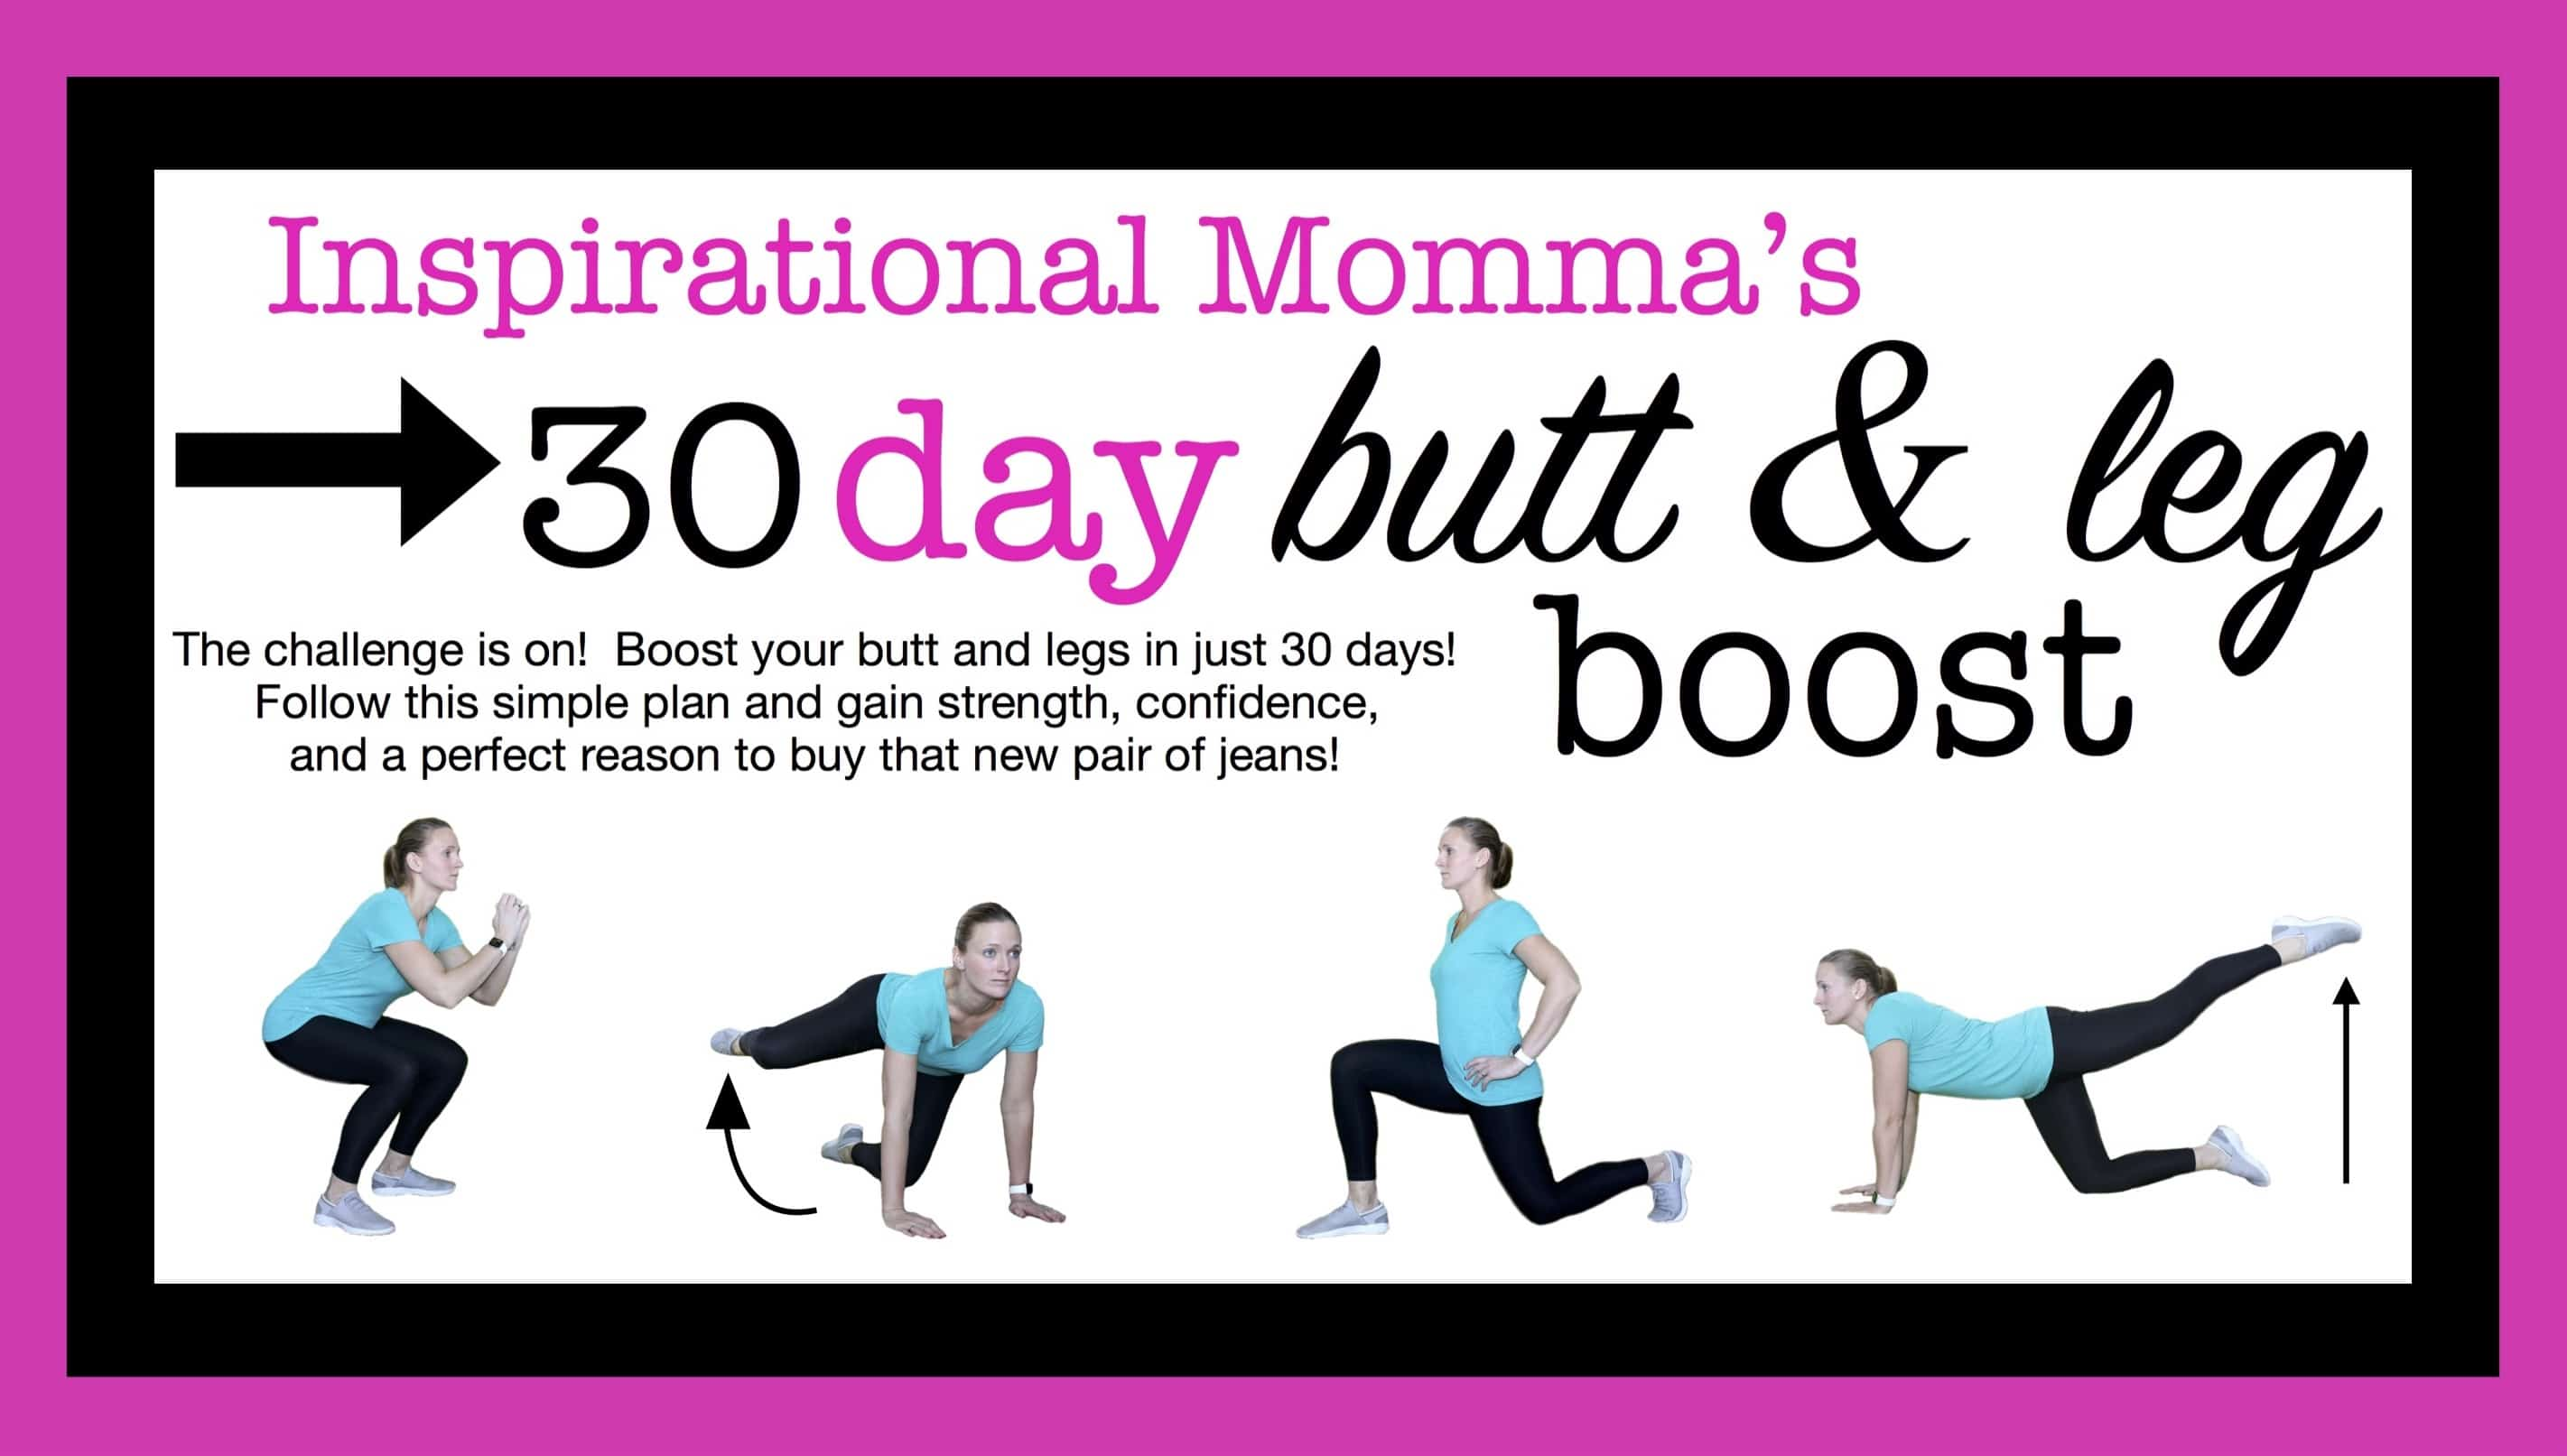 This 30-Day Workout Challenge Butt & Leg Boost is is just what you need to gain strength, confidence, and a perfect reason to buy that new pair of jeans!